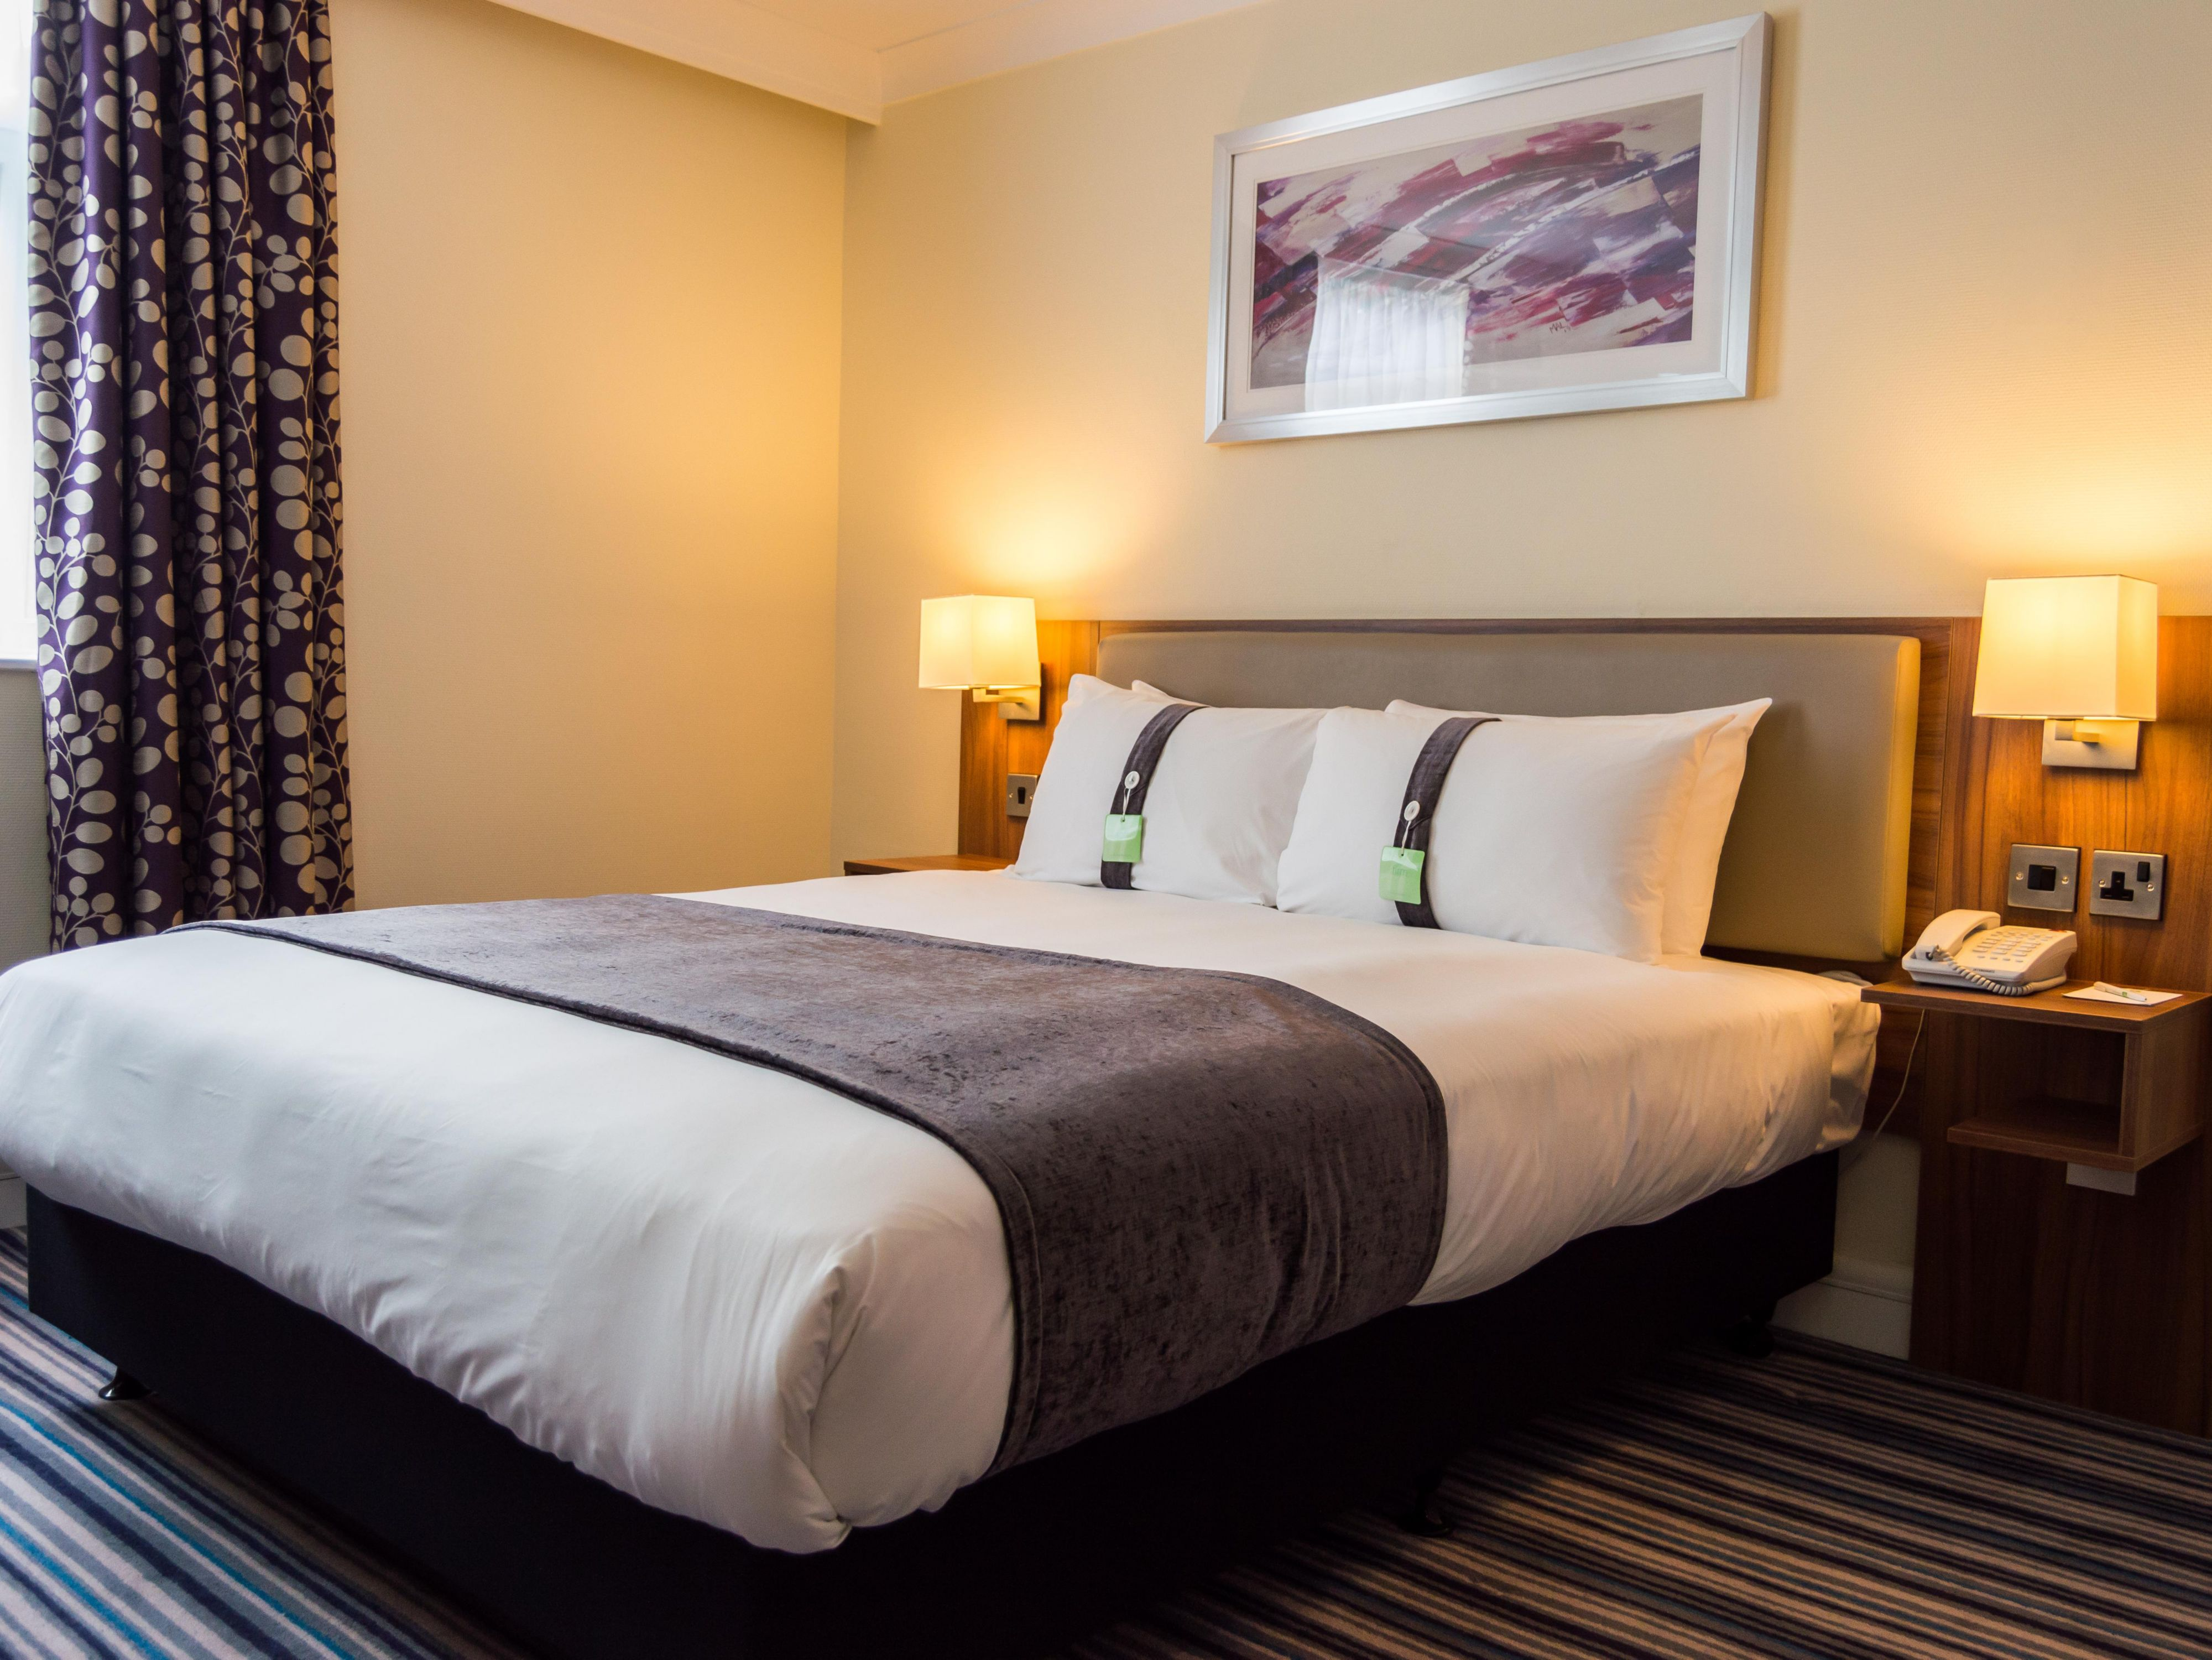 Executive Room with King Size Bed